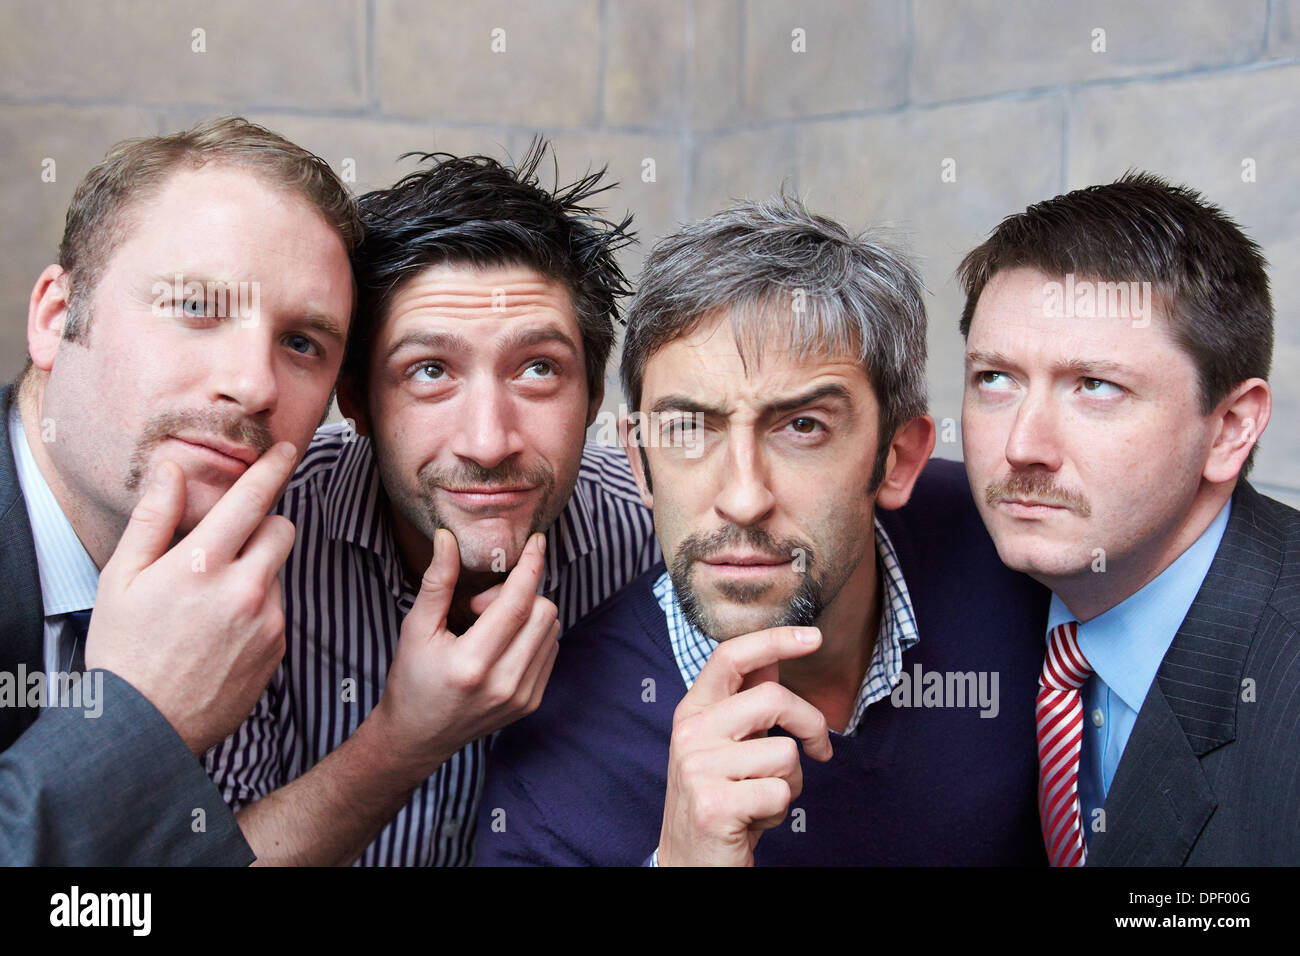 Hotel and restaurant staff in Oxford show off their moustaches grown for charity as part of Movember - Stock Image